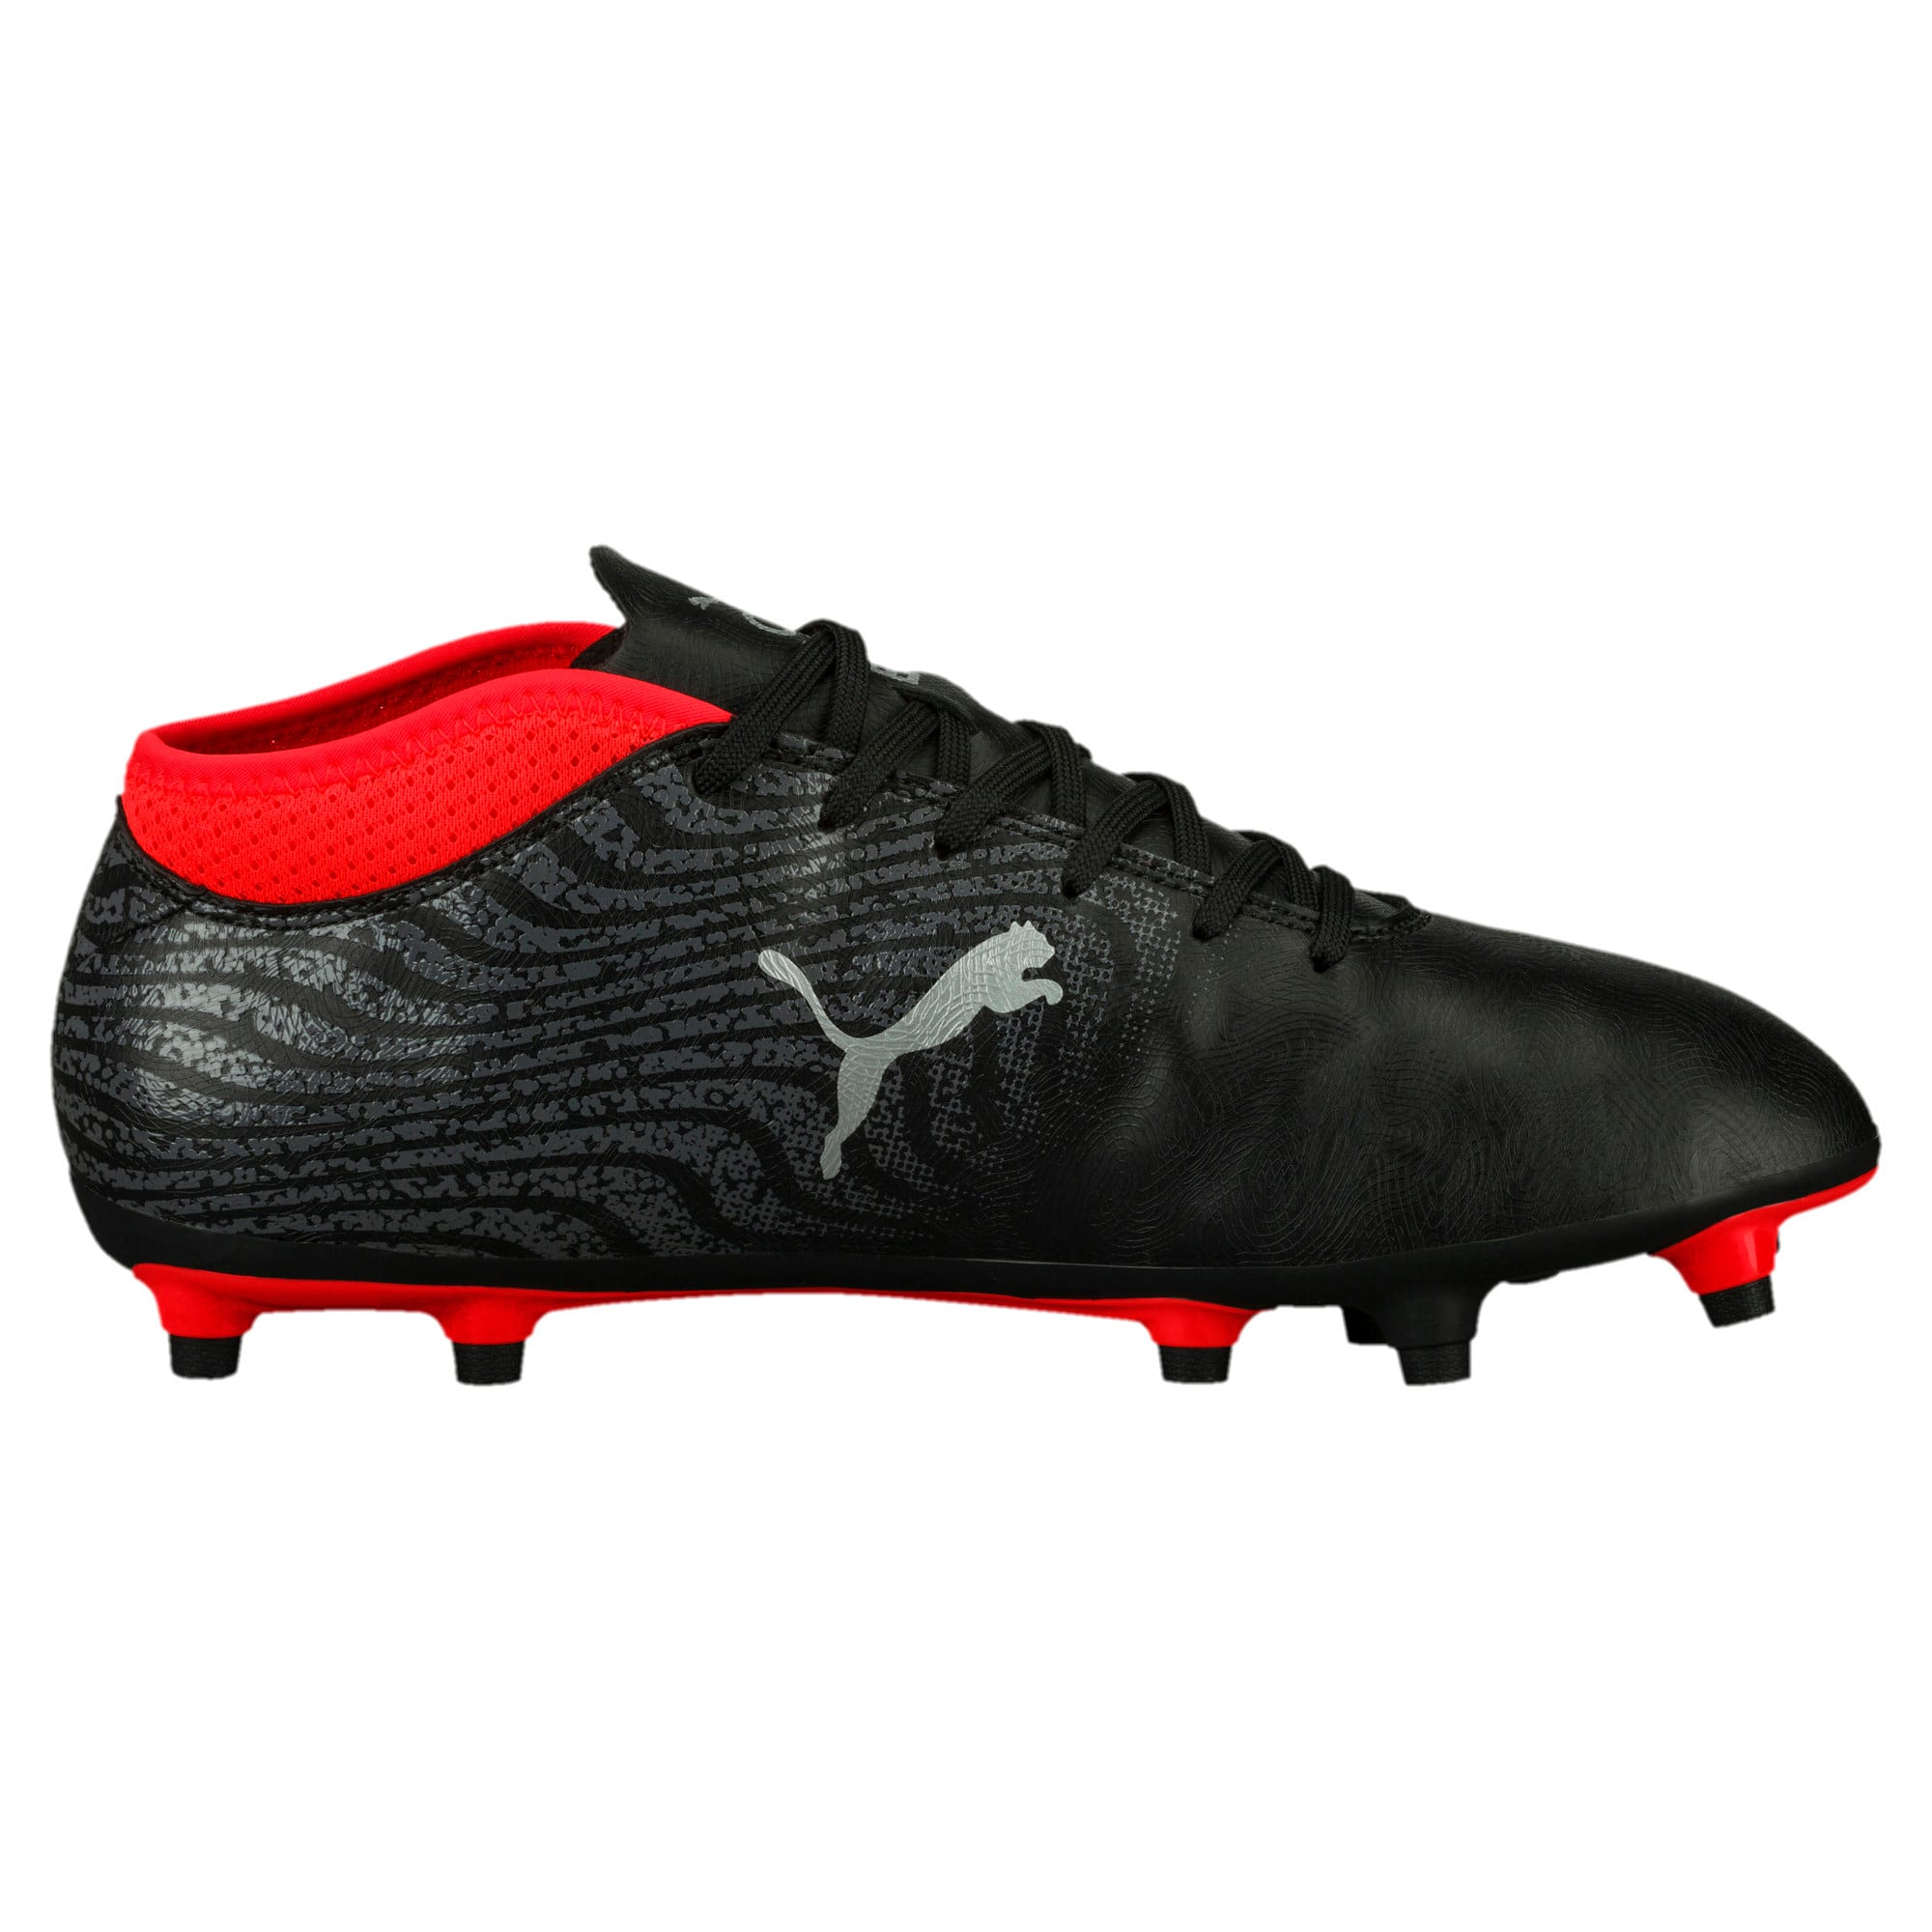 Thumbnail 4 of ONE 18.4 FG Men's Football Boots, Black-Silver-Red, medium-IND